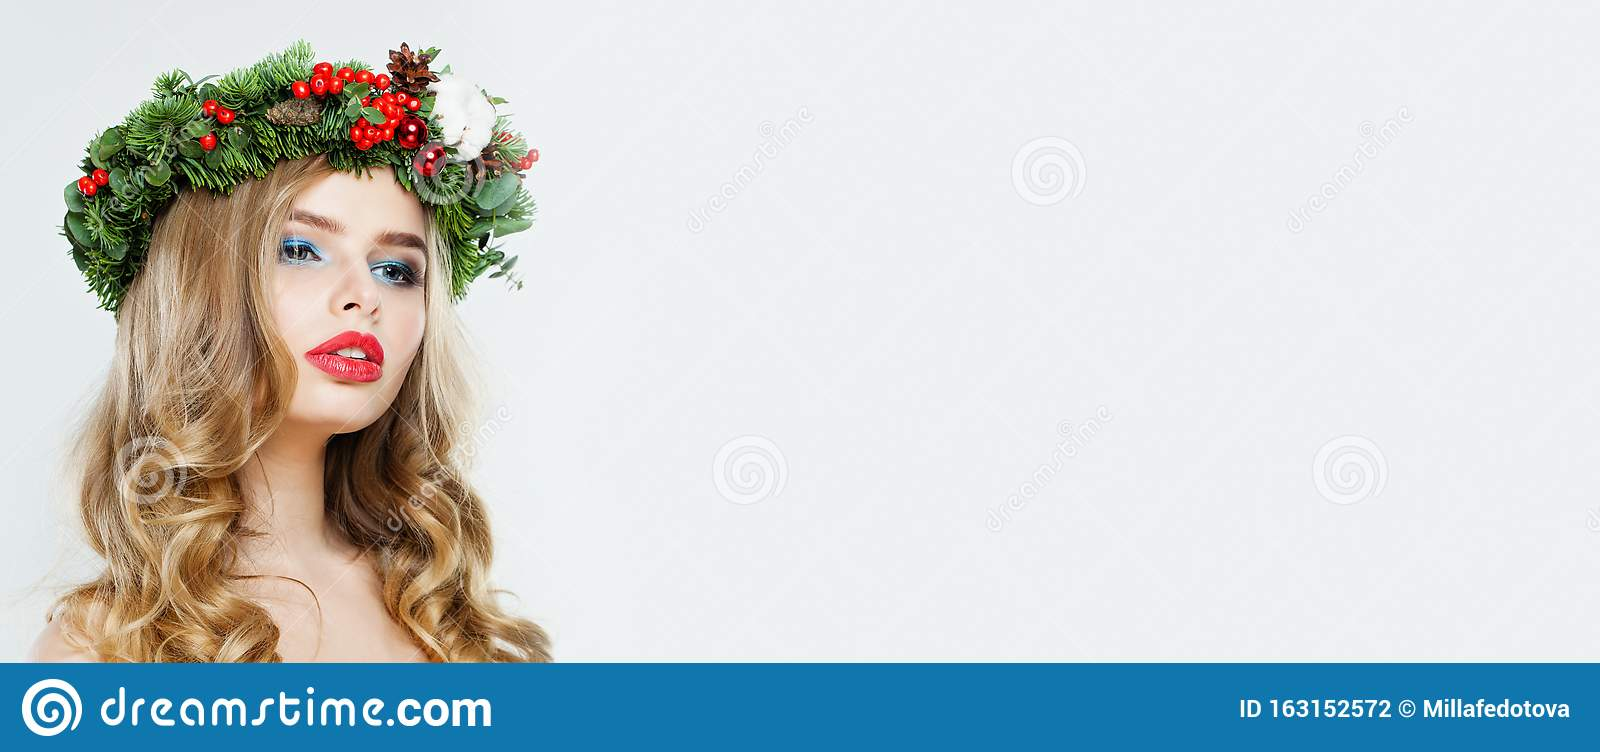 Beautiful Woman With Blonde Curly Hair On White Banner Background Christmas Concept Stock Photo Image Of Blonde Cute 163152572